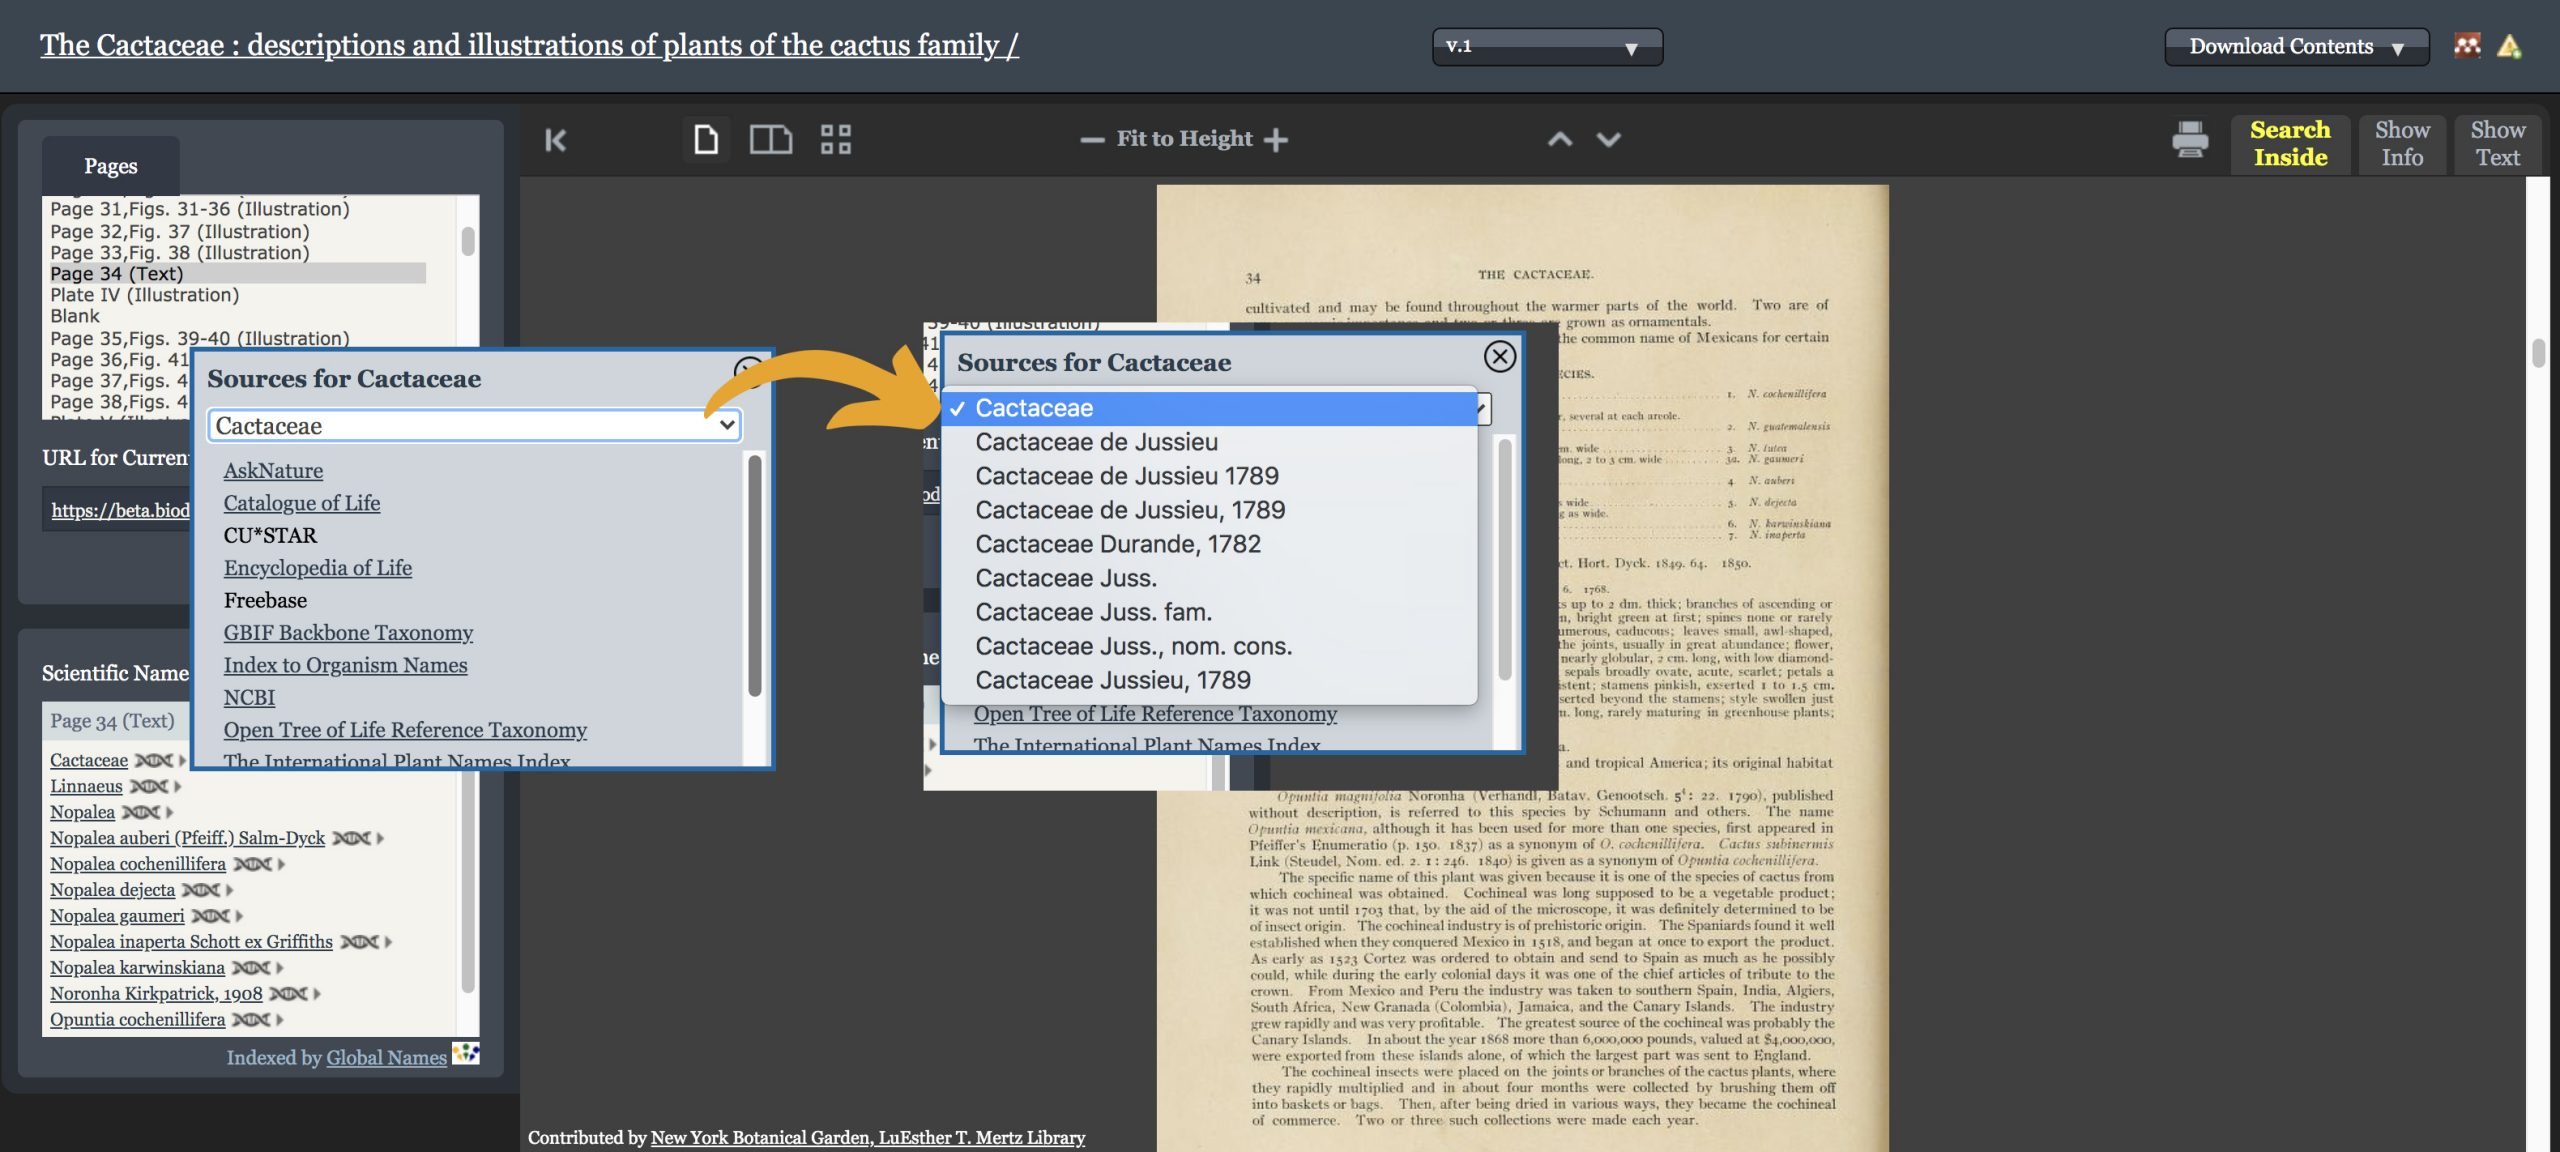 A digital book viewer interface with a popup box listing taxonomic database sources for the name Cactaceae.